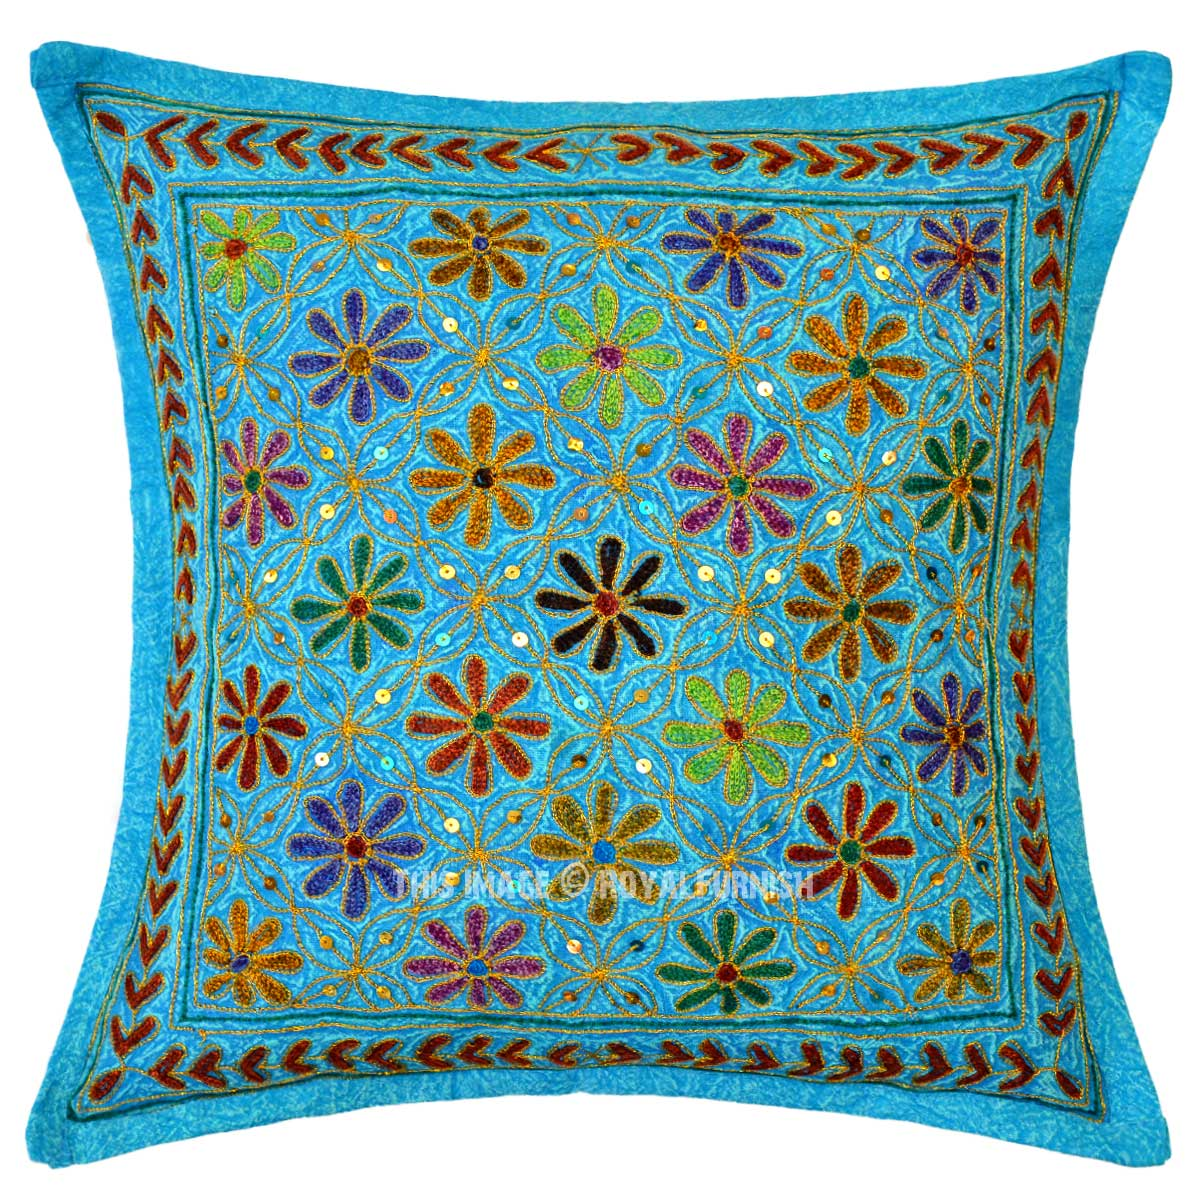 Embroidered Throw Pillow Covers : Turquoise Blue Decorative Needlepoint Embroidered Cotton Throw Pillow Cover 16X16 - RoyalFurnish.com